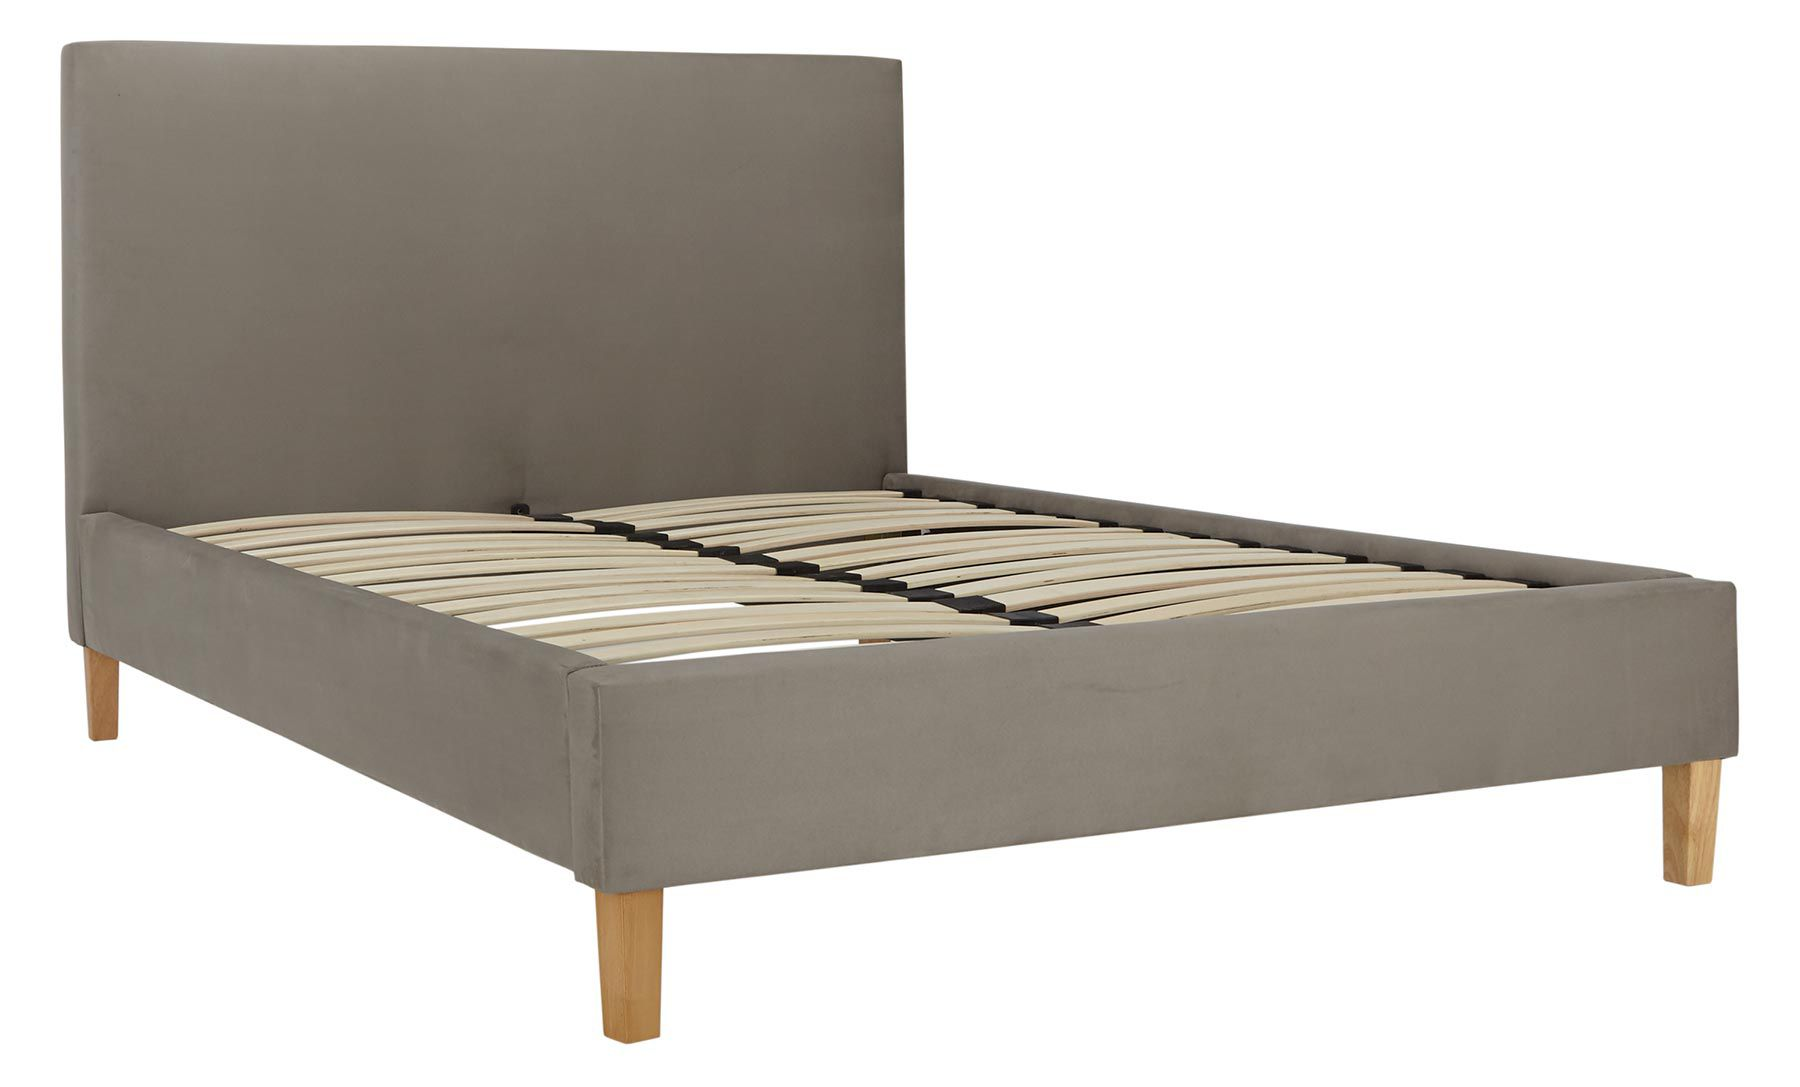 Australia King Size Bed Dimensions Choosing The Ideal Bed